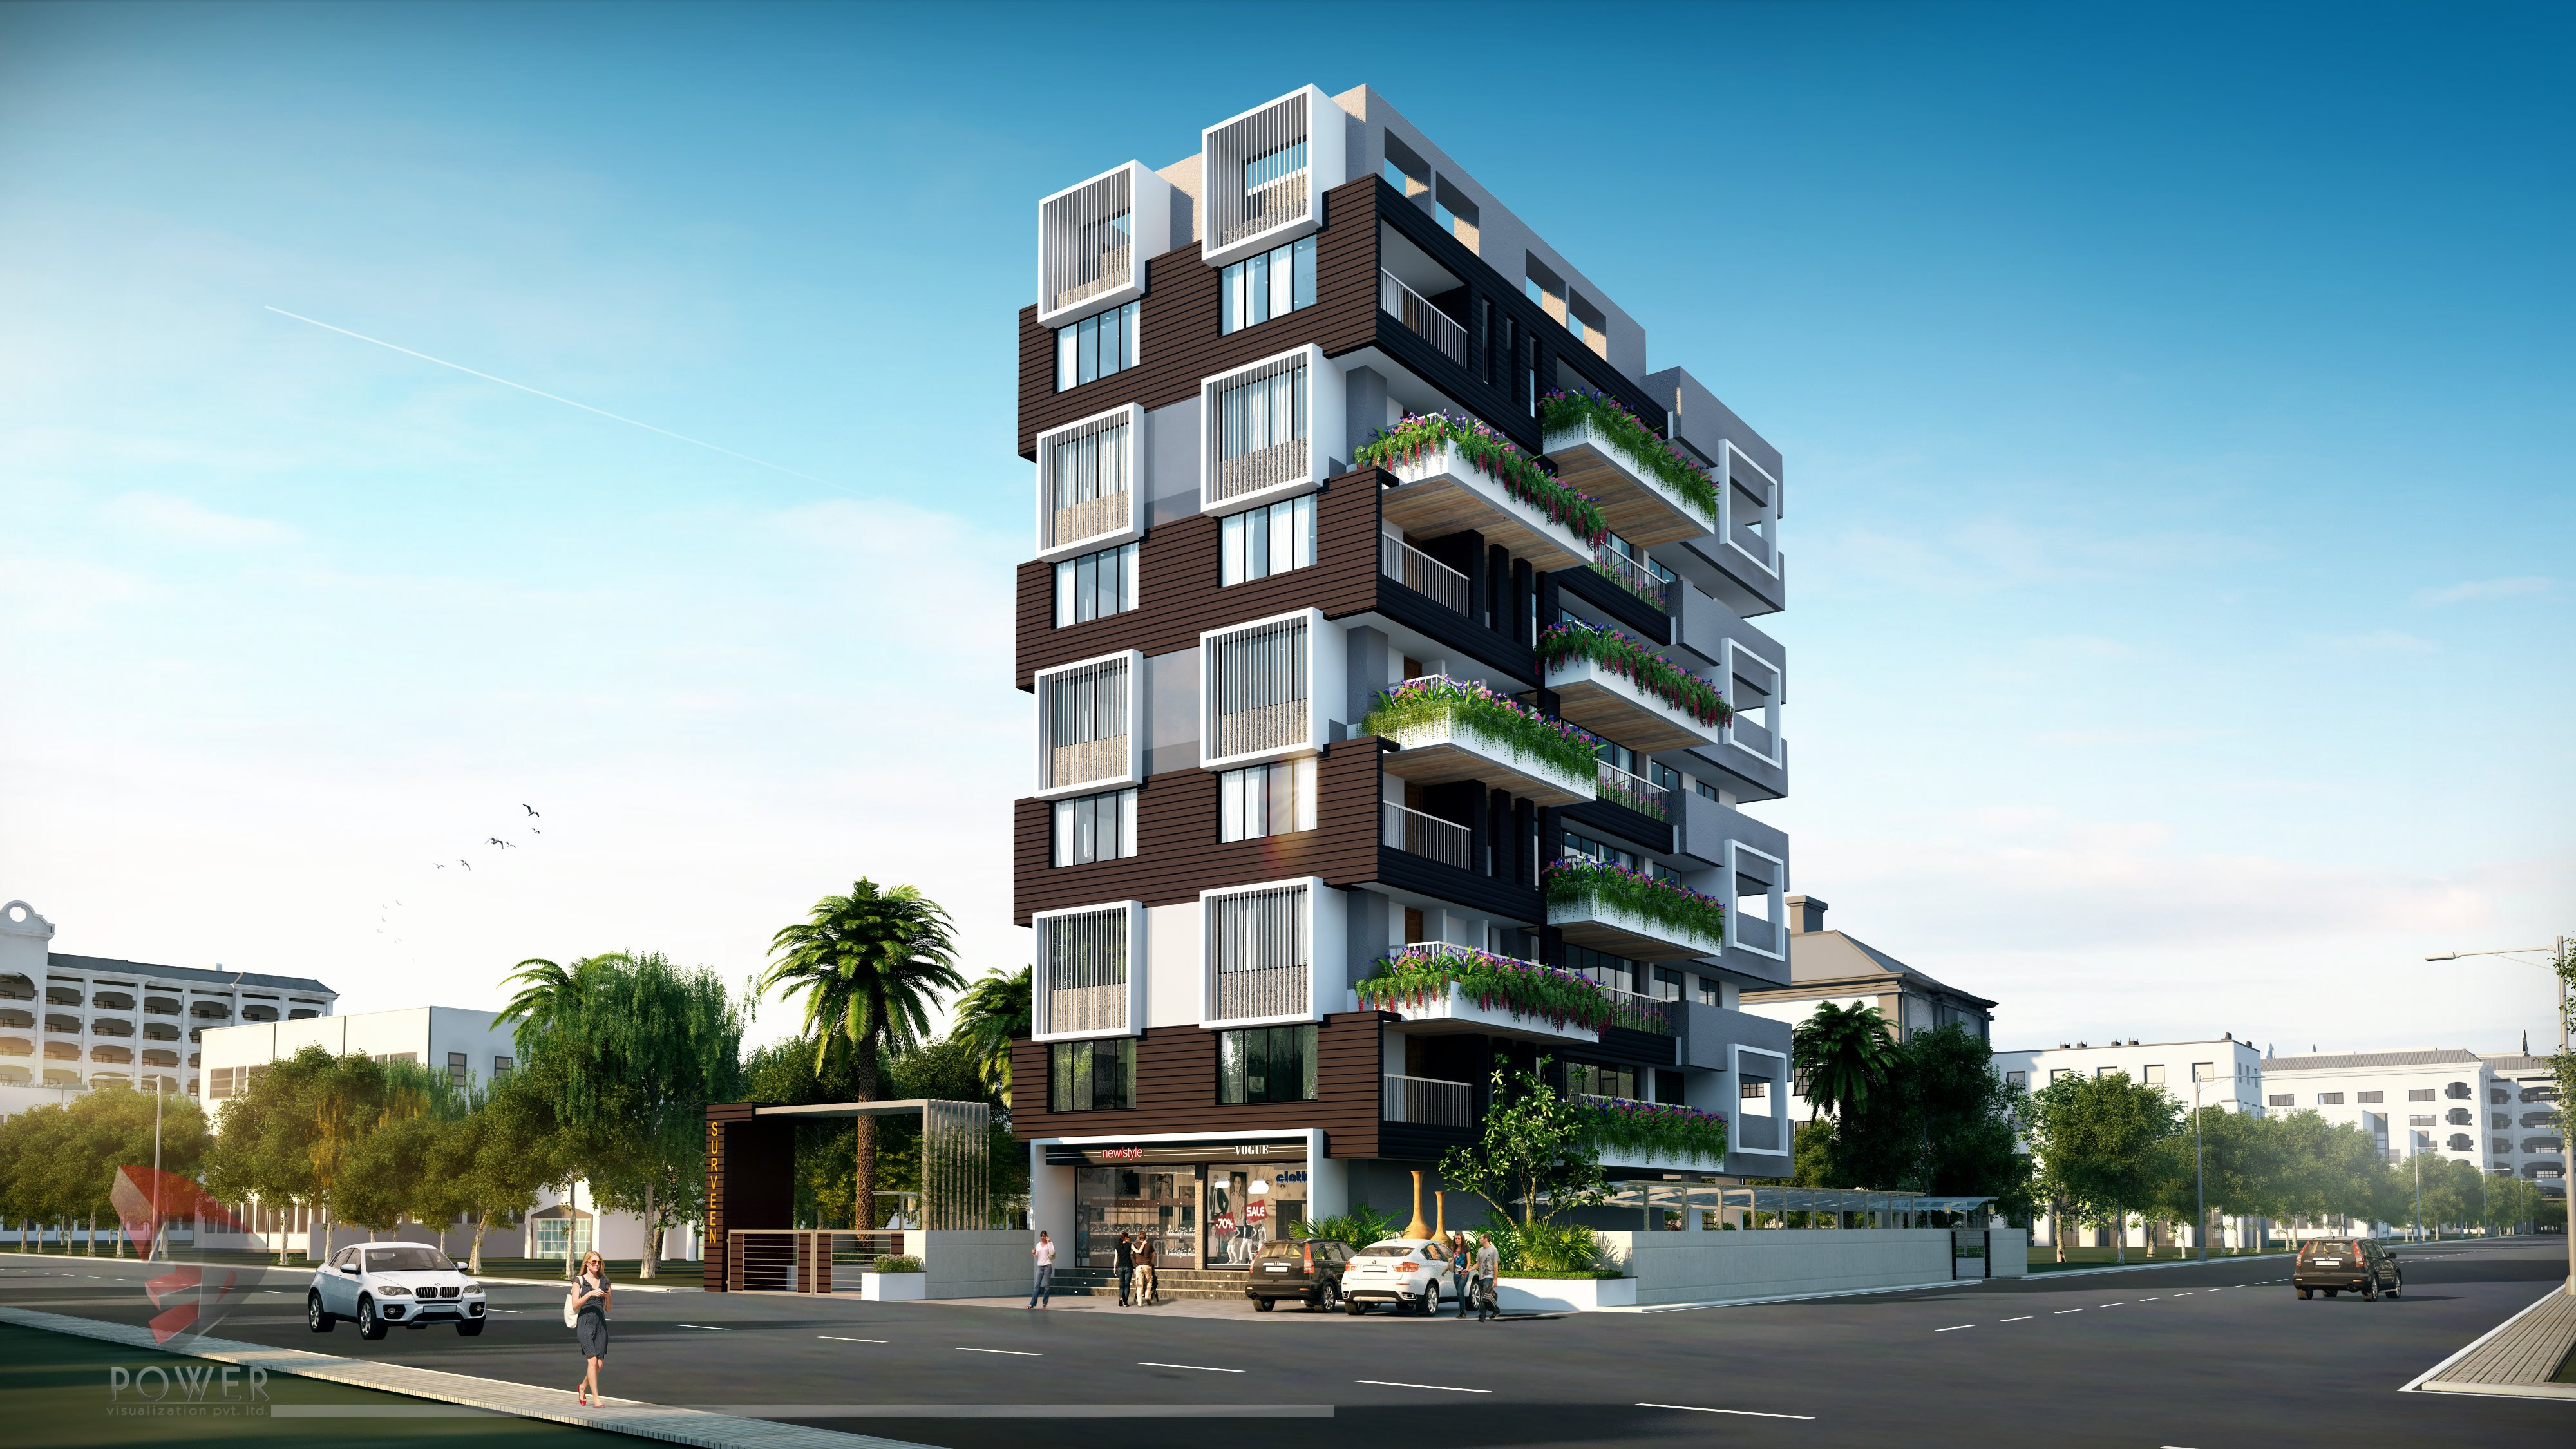 elevation apartment 3d architecture apartments residential power designing 3dpower architectural invest rendering